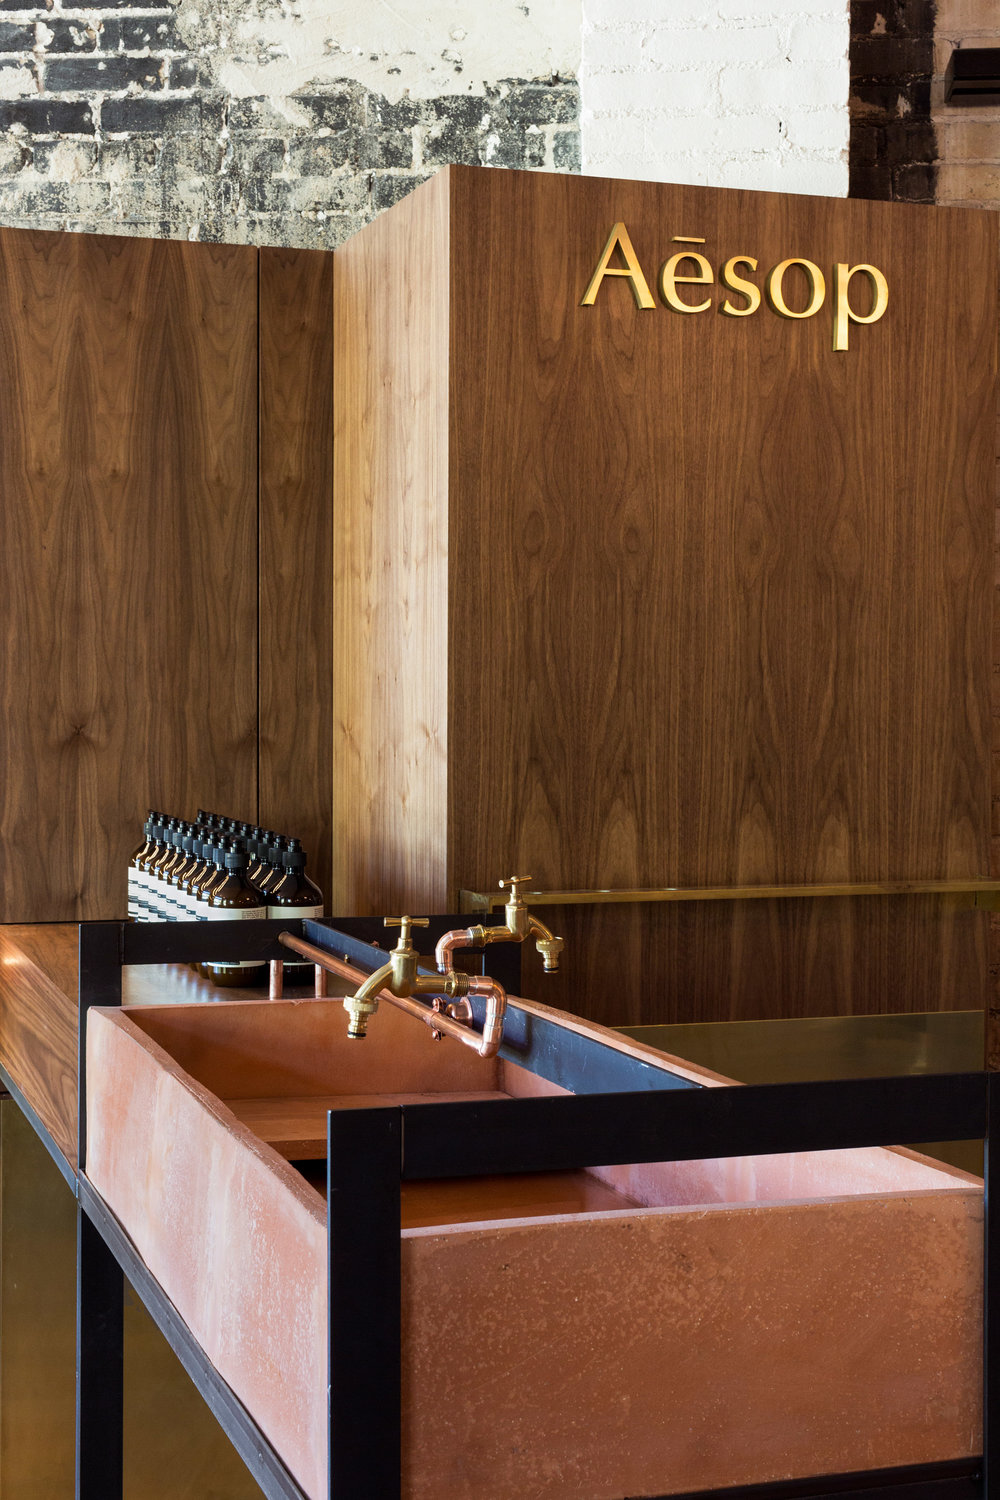 Aesop store in Florida. Interior design by Mexican architect Frida Escobedo.